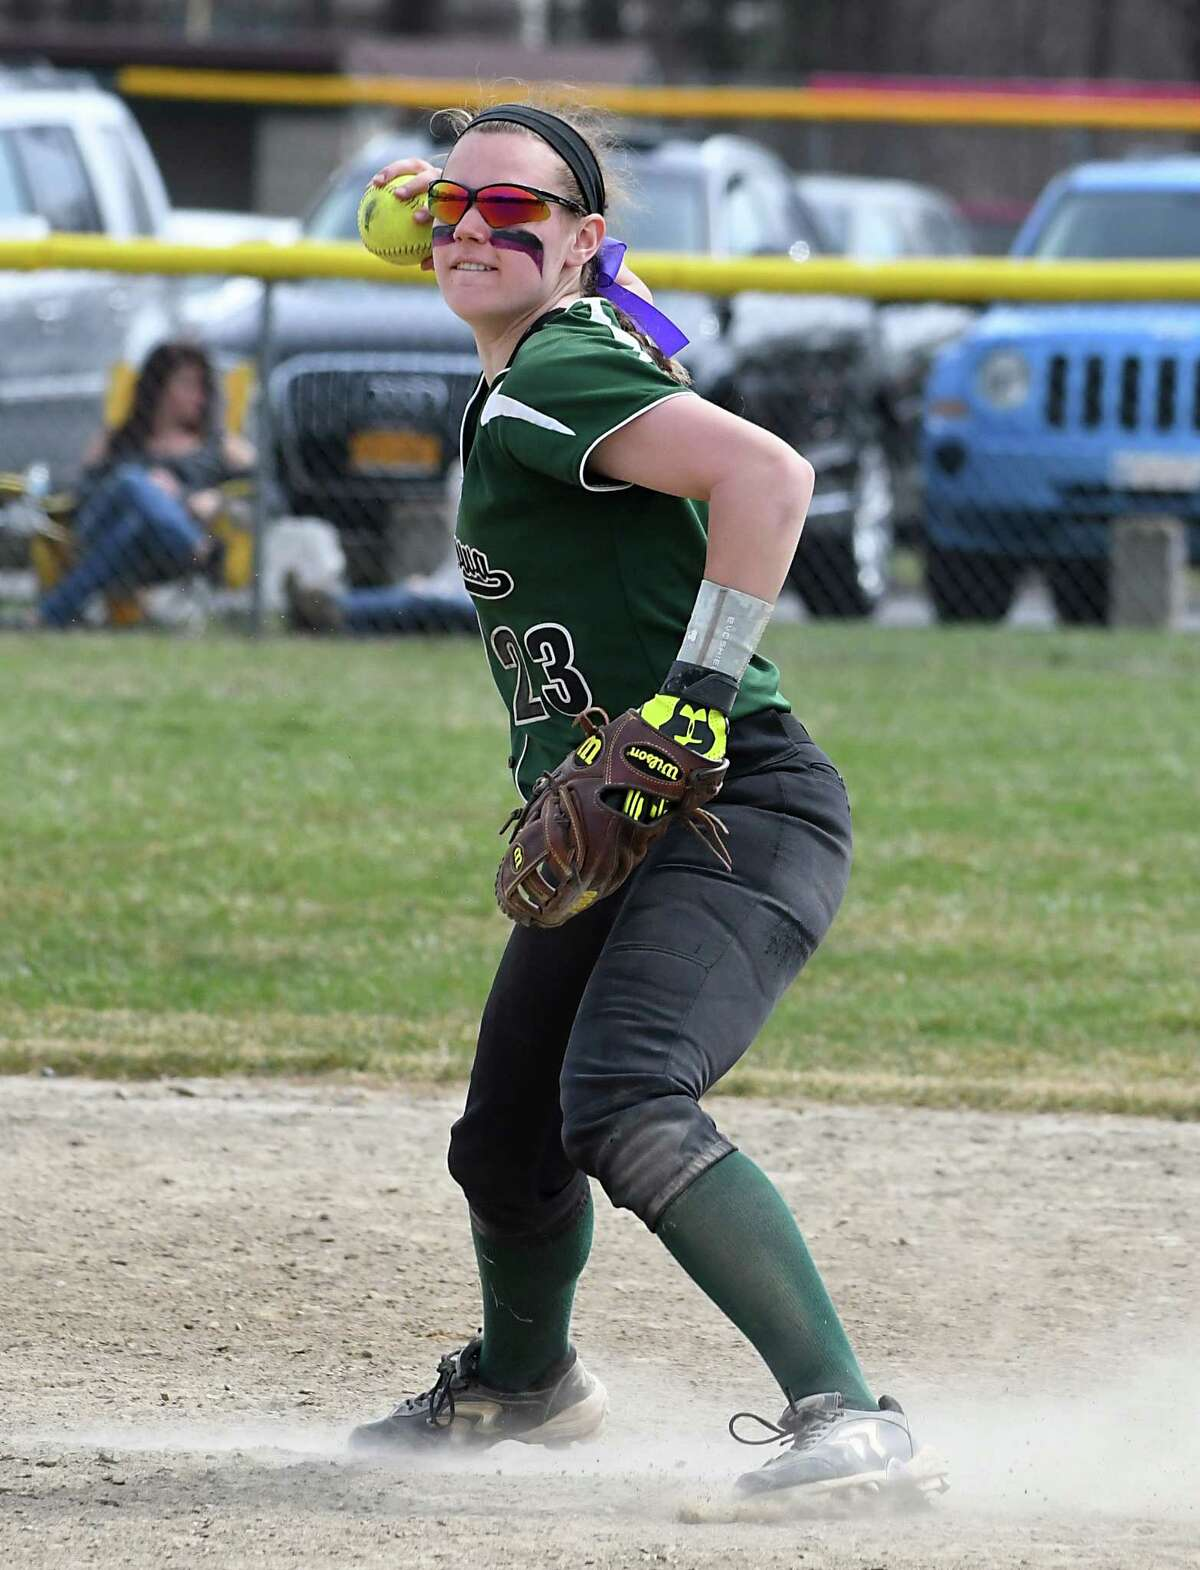 Shenendehowa shortstop Nicole McCarville throws to first base during a softball game with Massapequa on Saturday, April 15, 2017 in Clifton Park, N.Y. (Lori Van Buren / Times Union)